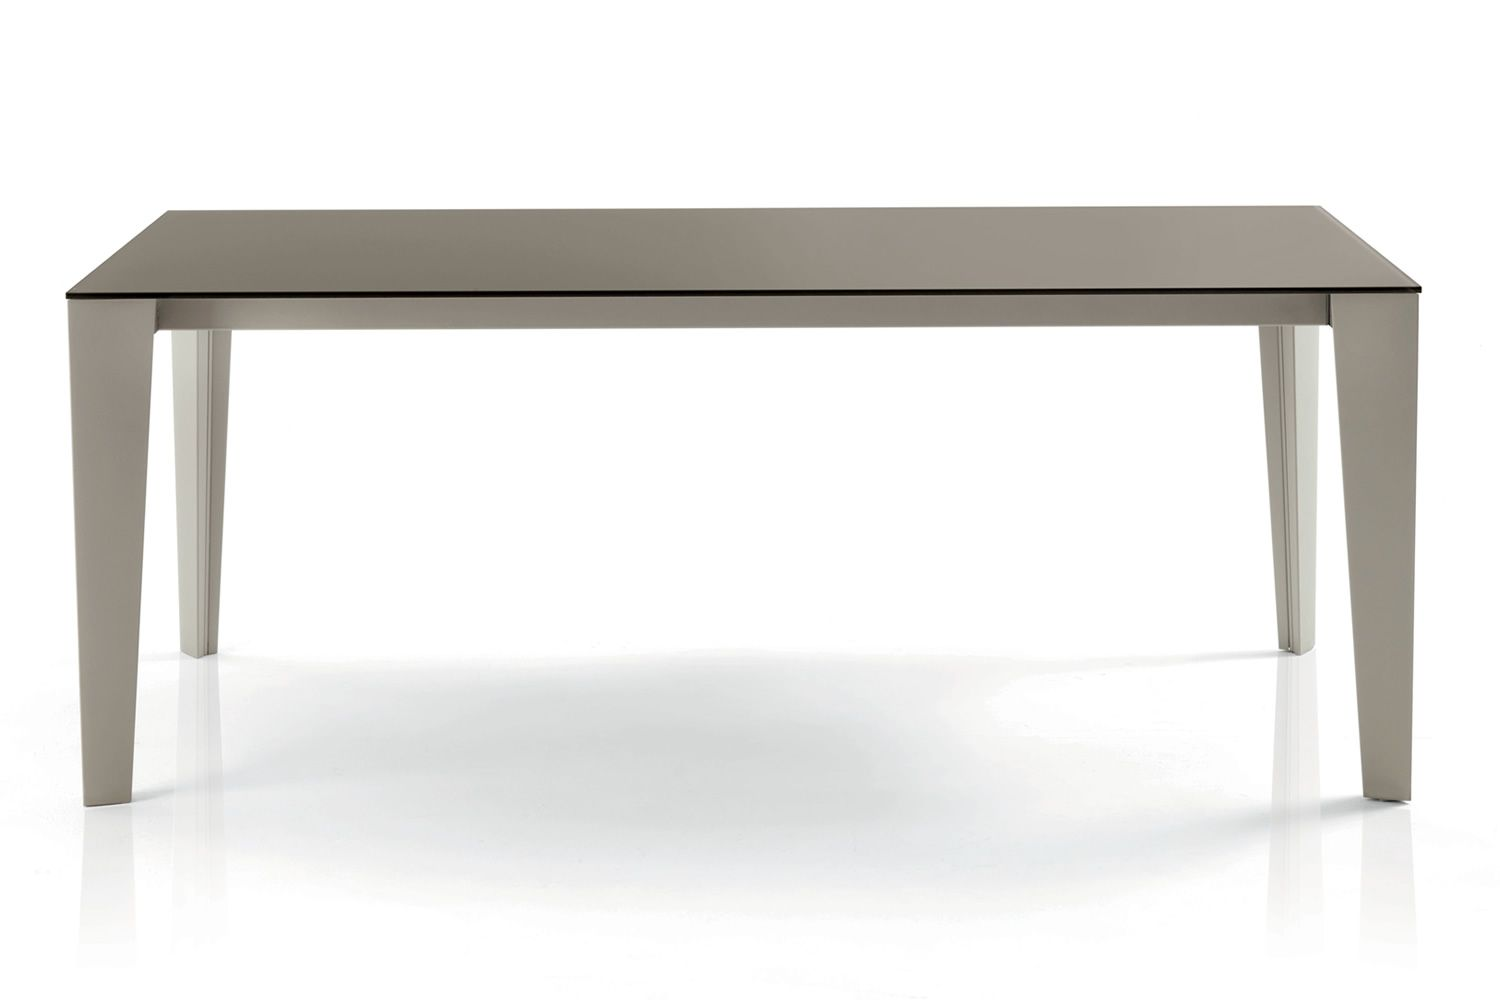 Cruz table design de bontempi casa 140 x 90 cm - Bureau 90 cm de large ...